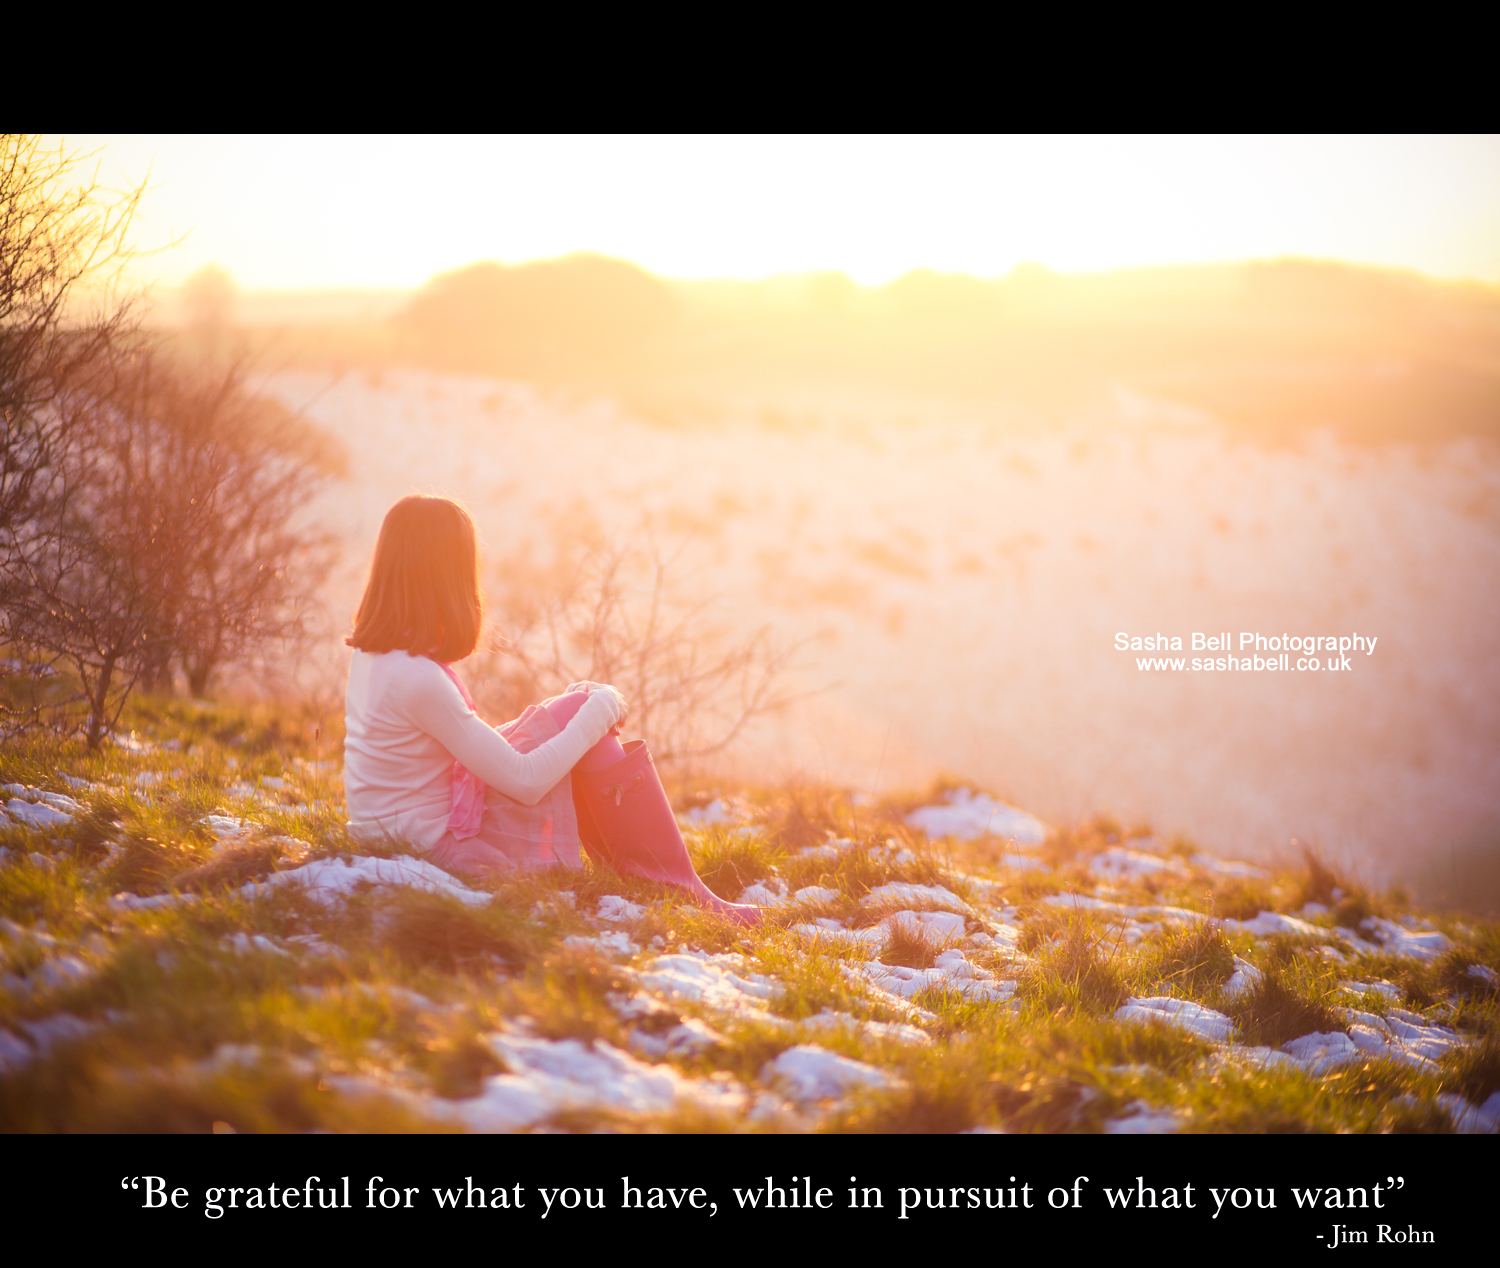 """Be grateful for with you have, while in pursuit of what you want"""